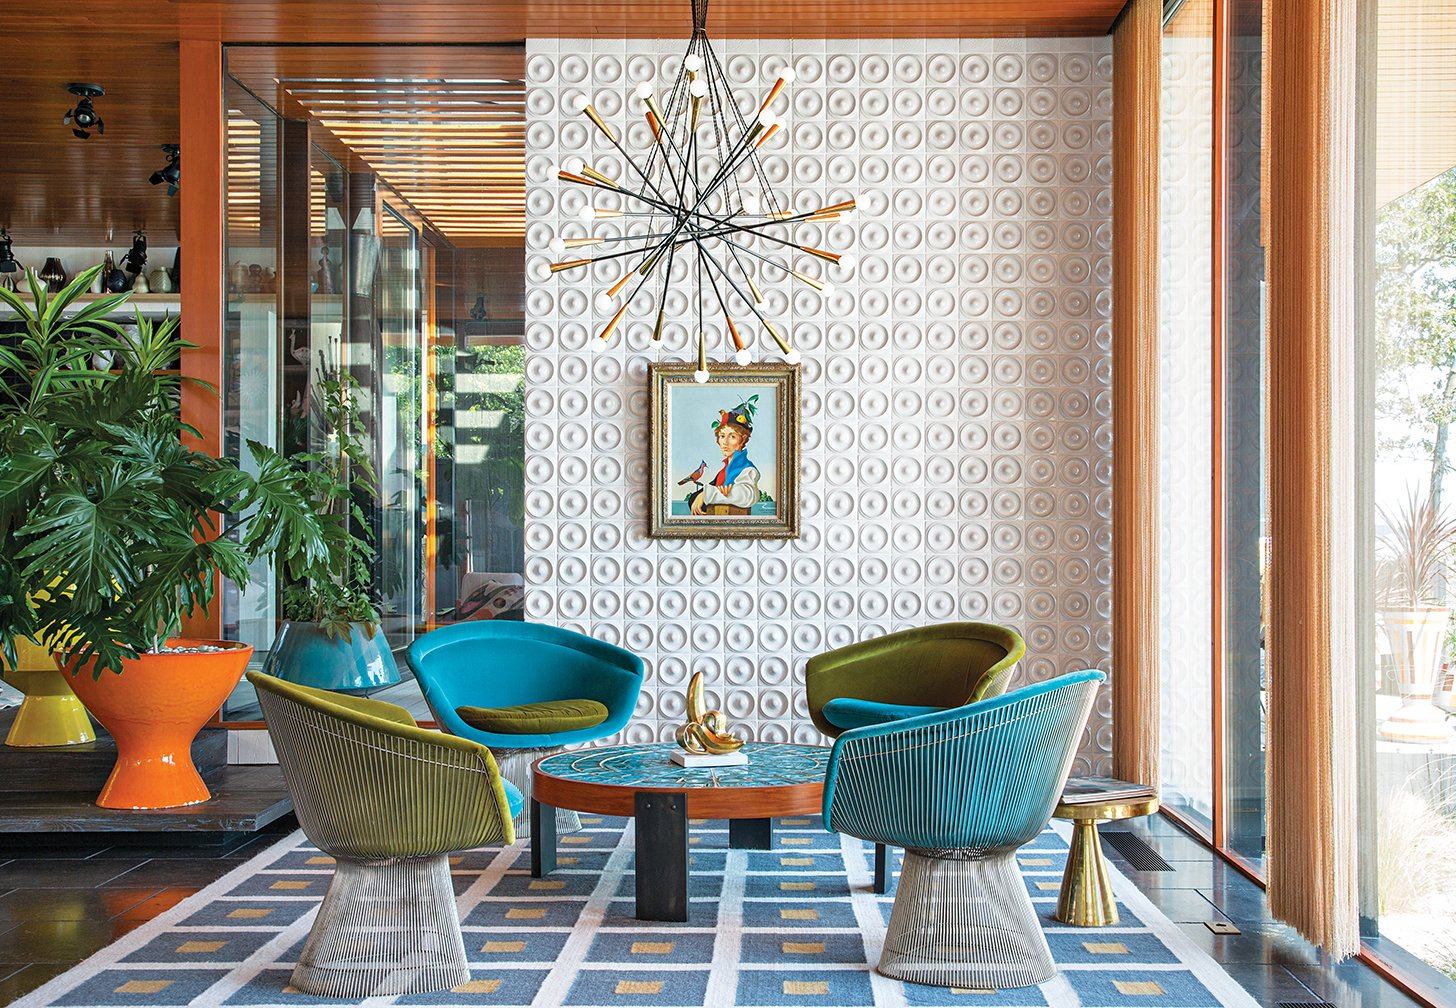 """There's no right answer except to play and experiment,"" says interior designer Jonathan Adler in regards to the Shelter Island getaway he shares with his husband, fellow design expert Simon Doonan. Custom ceramic wall tiles, a few plants, and a self-made rug, stool, and coffee table all add to the home's inimitable decor. Tagged: Living Room, Chair, and Pendant Lighting.  50+ Modern Tile Ideas for Walls, Floors and Ceilings by William Lamb from Spaces Transformed by Interior Plants"